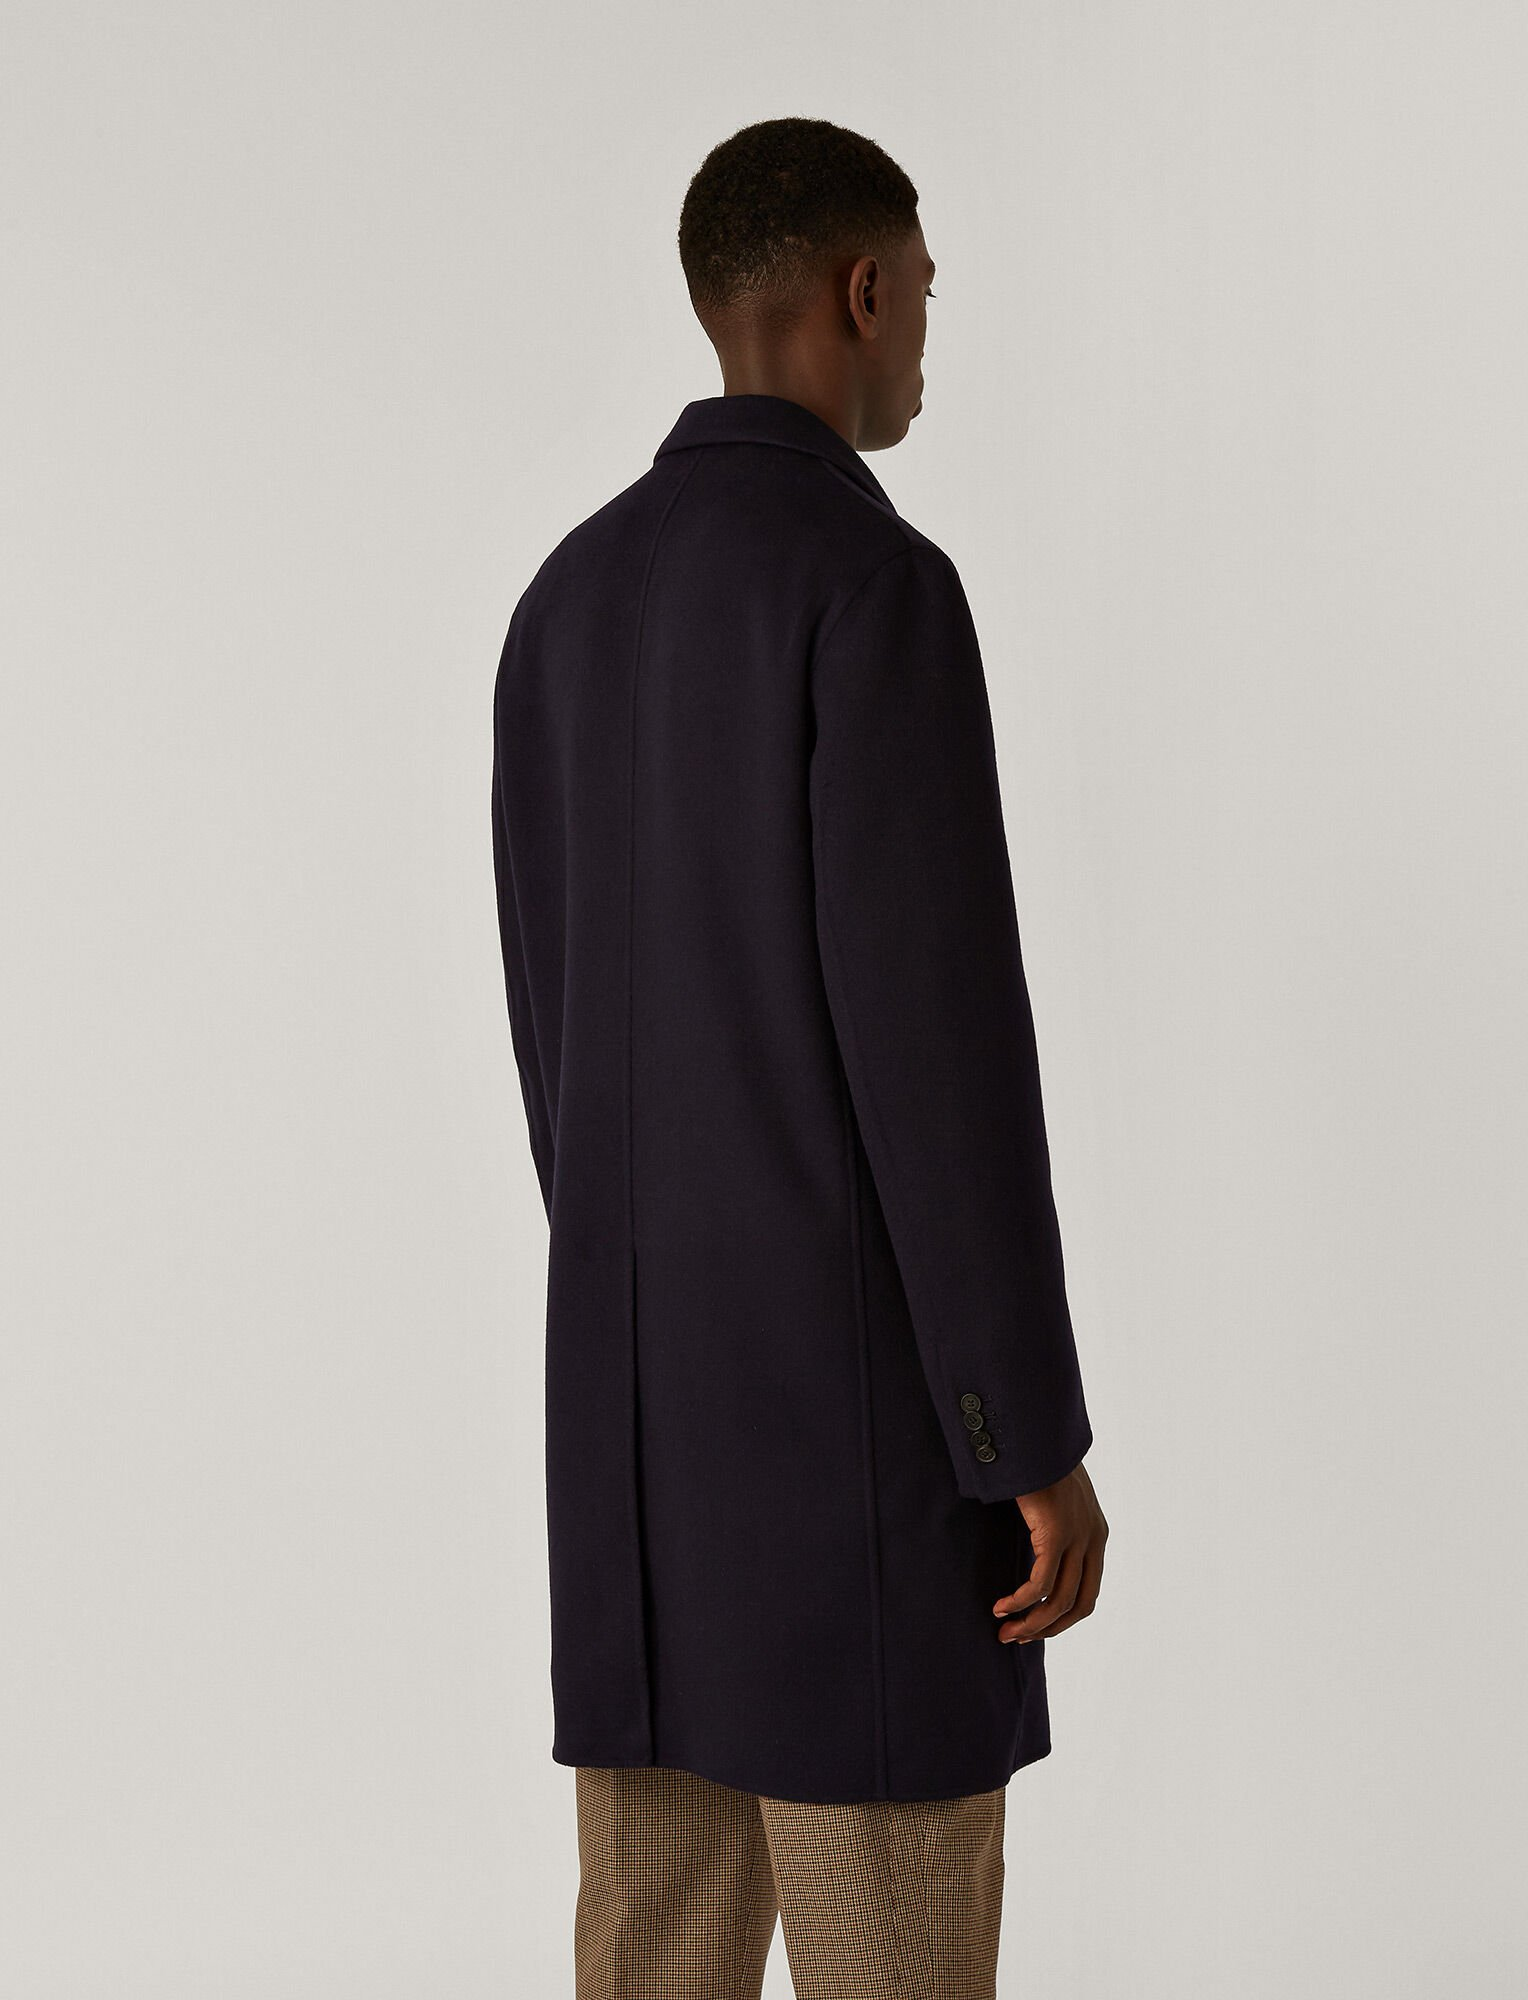 Joseph, Manteau Armand en double cachemire, in NAVY